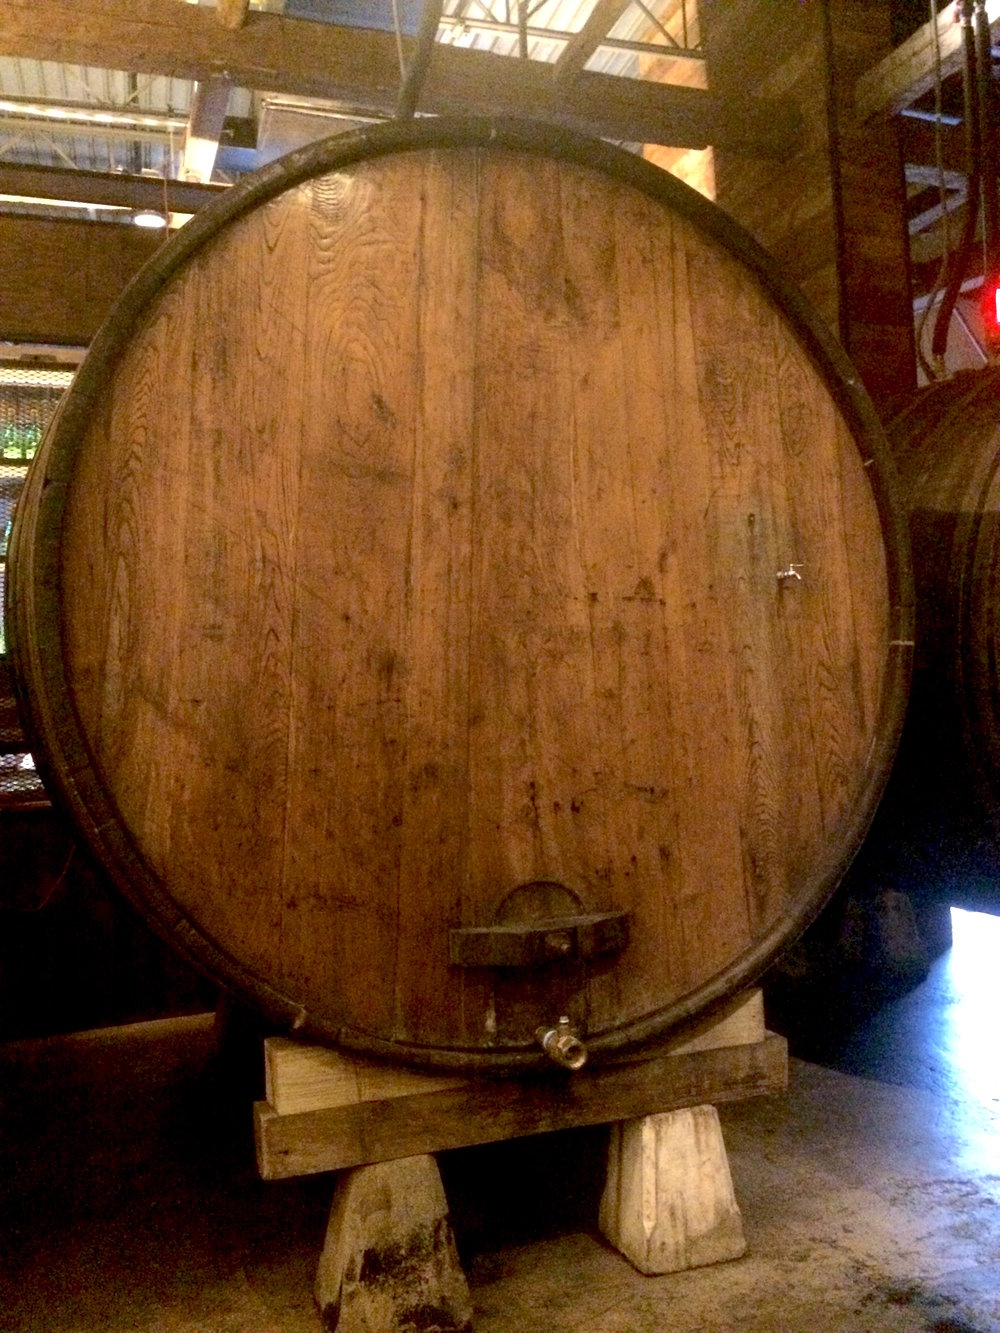 8-foot barrel of cider. Delicious.